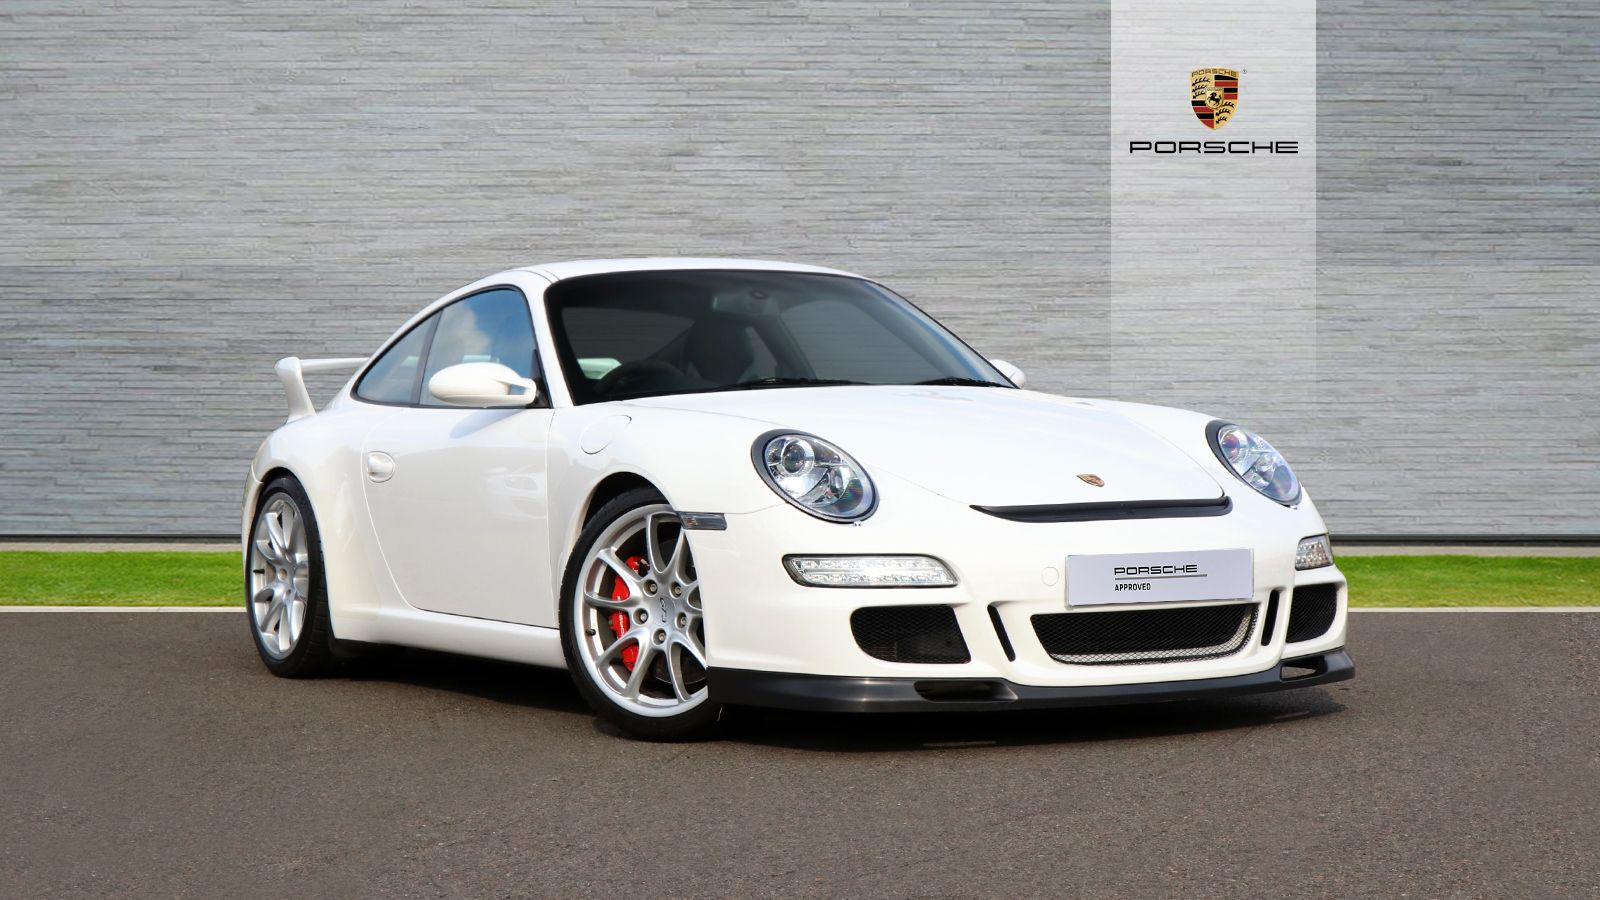 Porsche Approved with Grilles Mid Sussex 1600x900.jpg